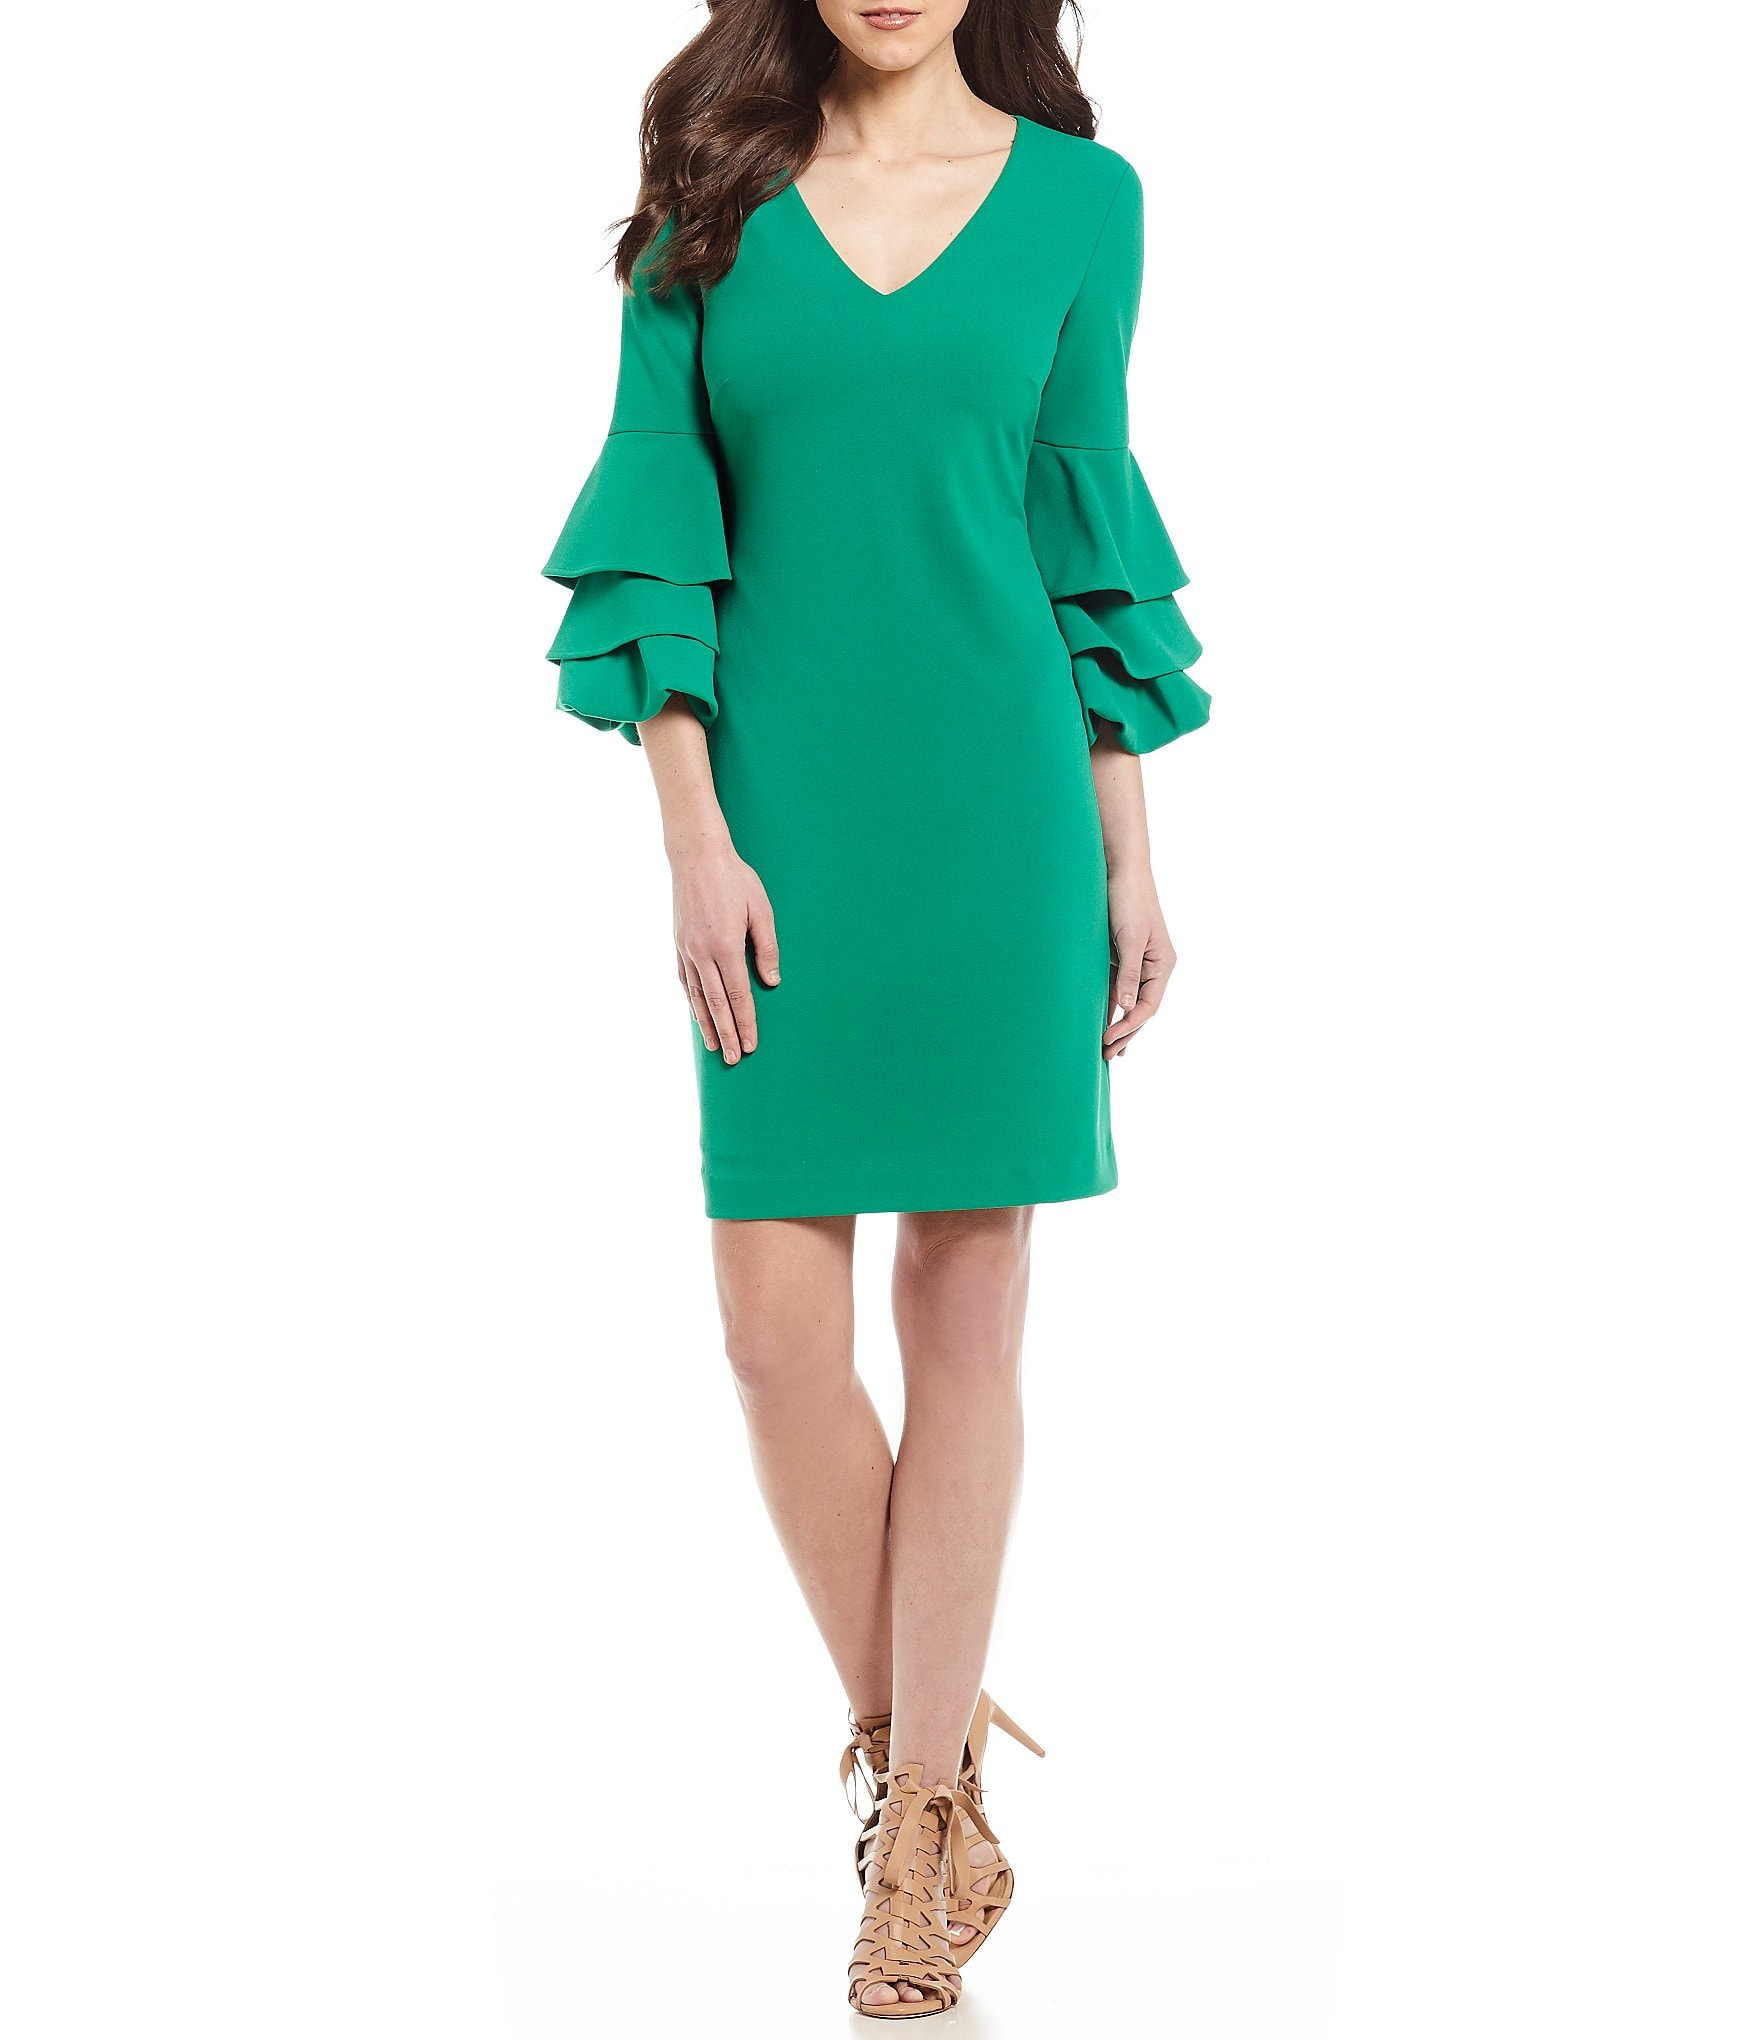 Charming Dress For Office Christmas Party Ideas - Wedding Ideas ...